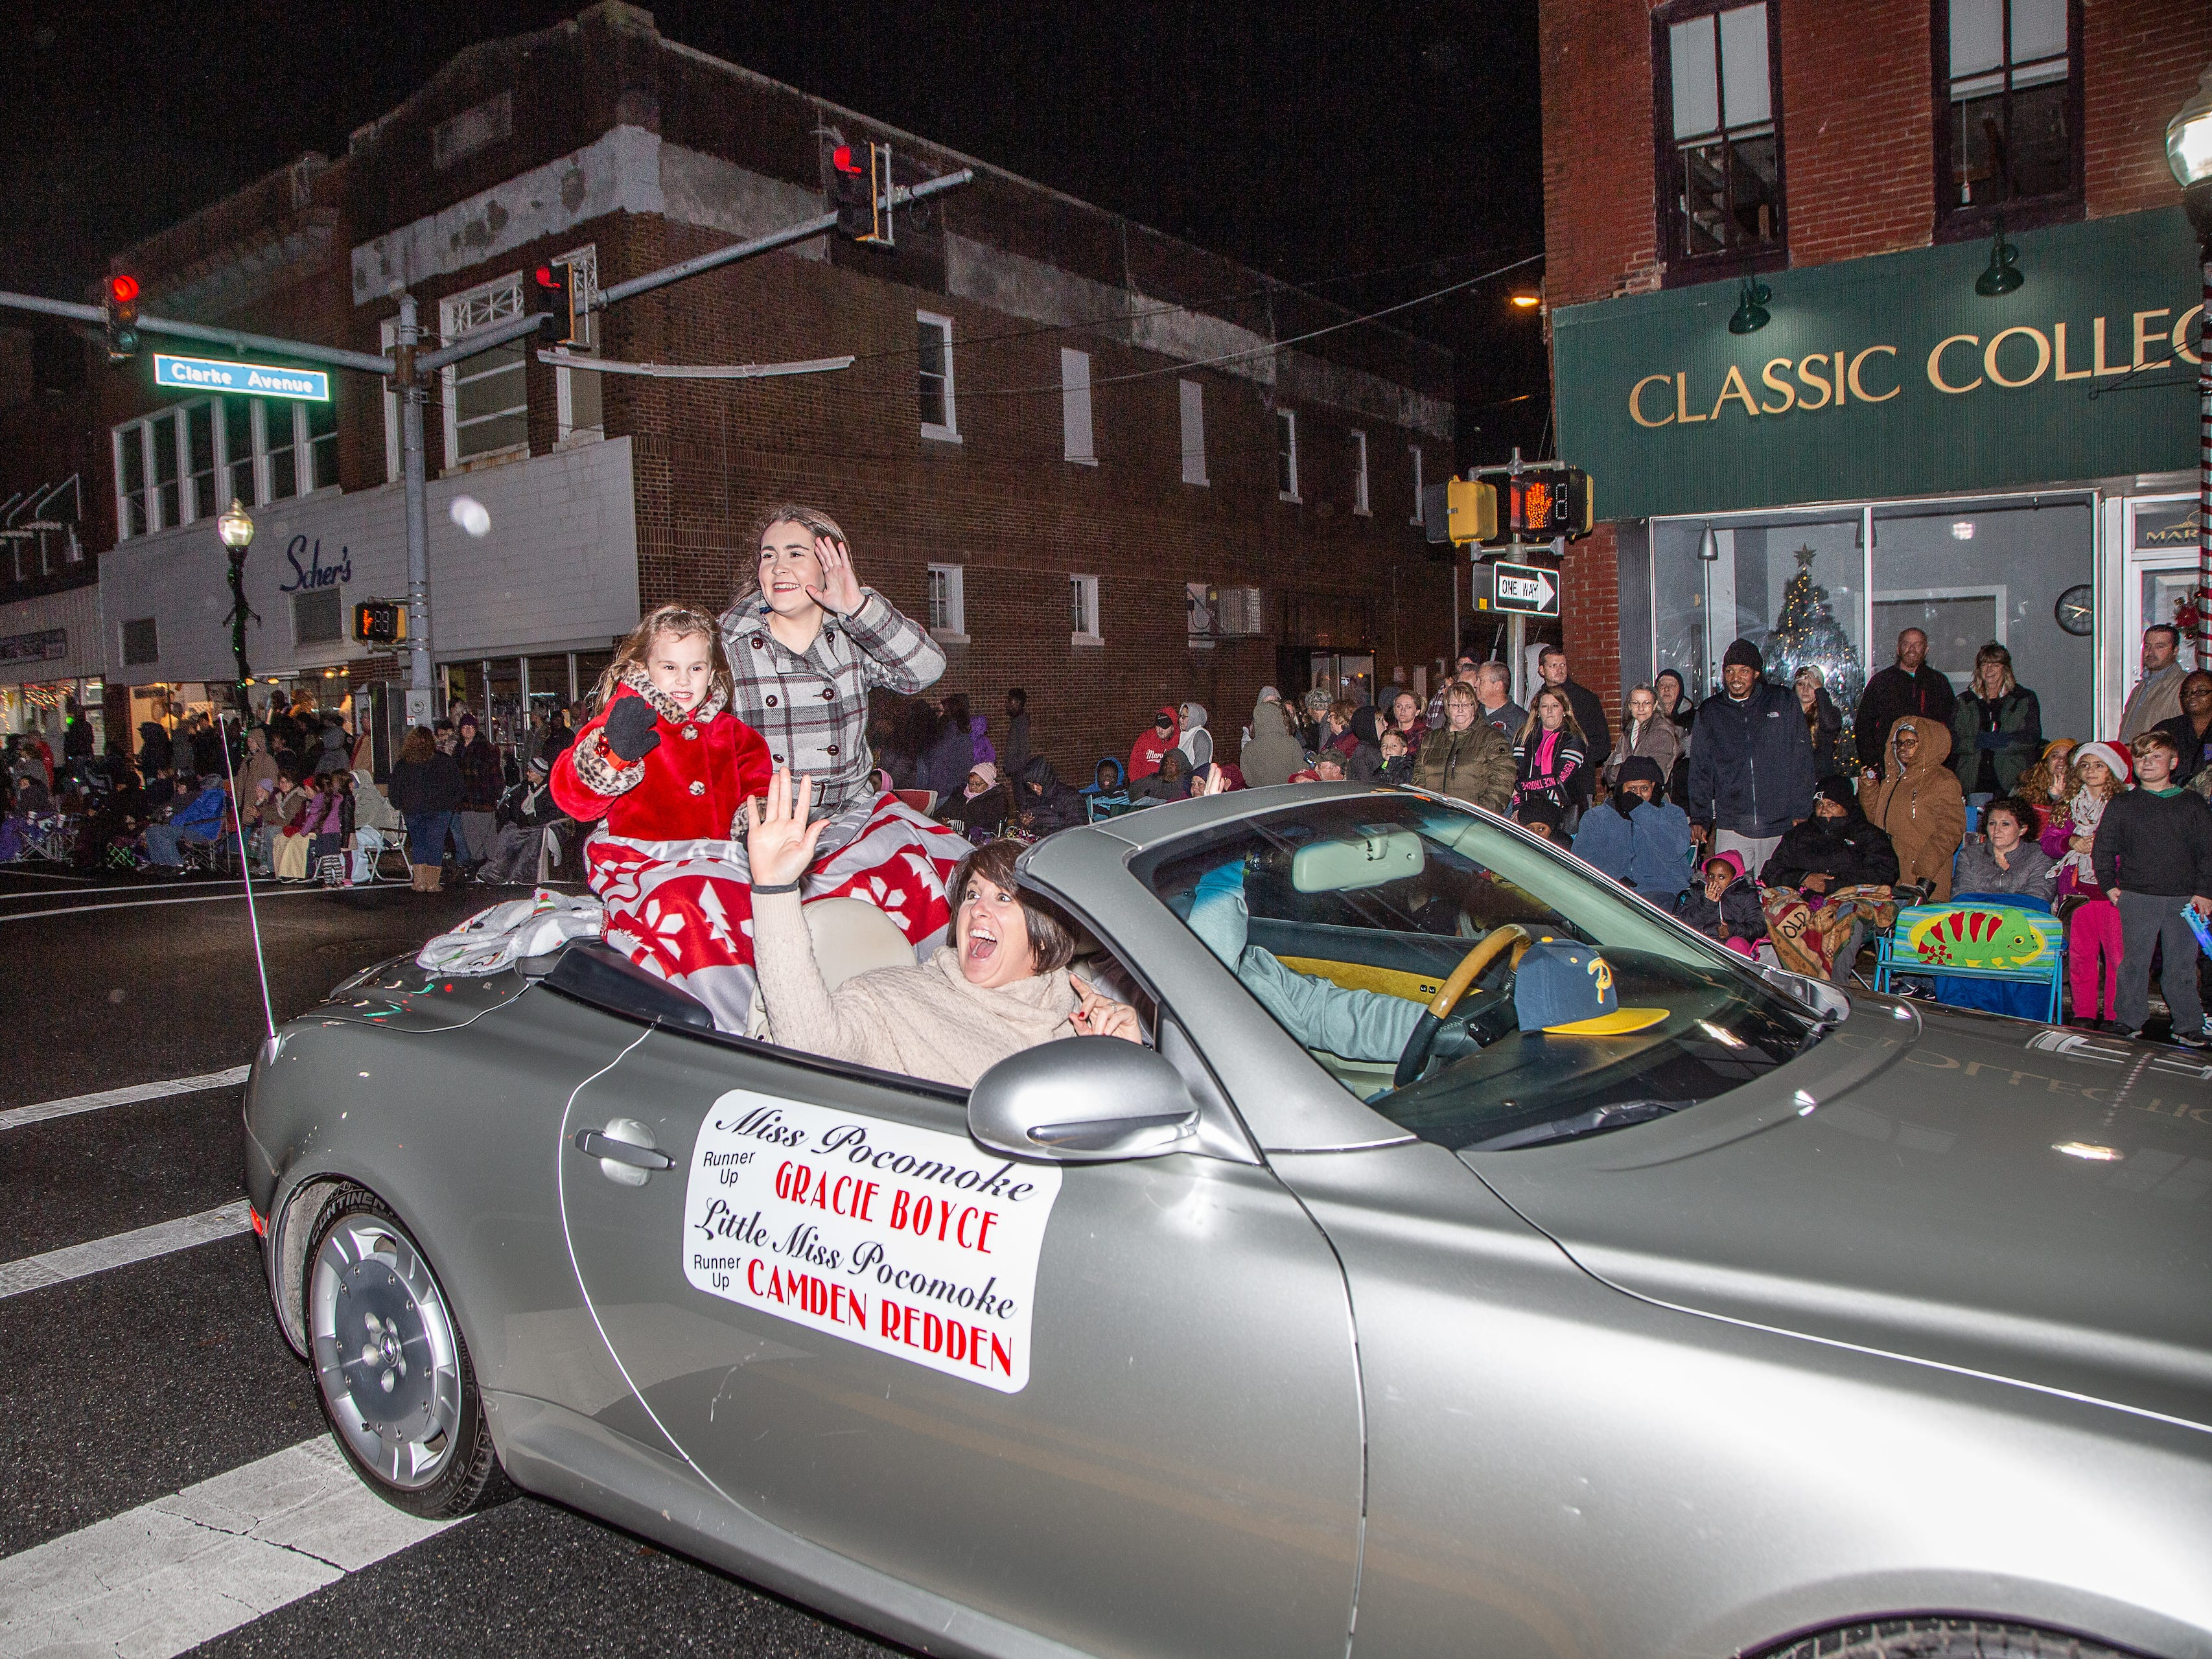 Miss and Little Miss Pocomoke wave to the crowd during the town's annual Christmas parade.